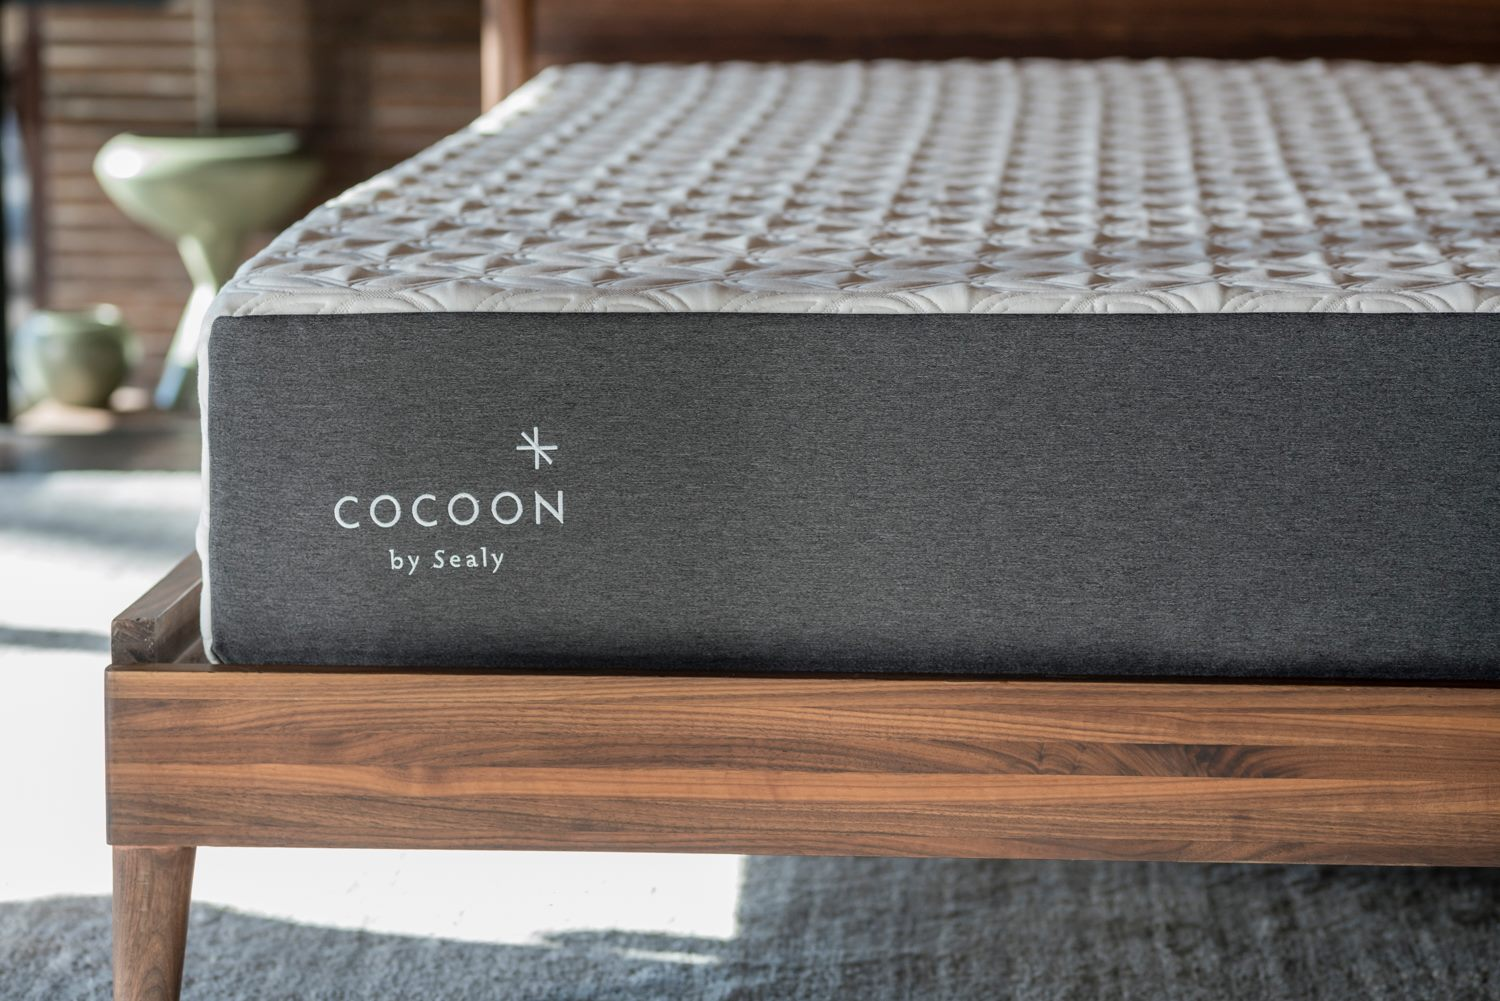 cocoon mattress vs casper mattress review